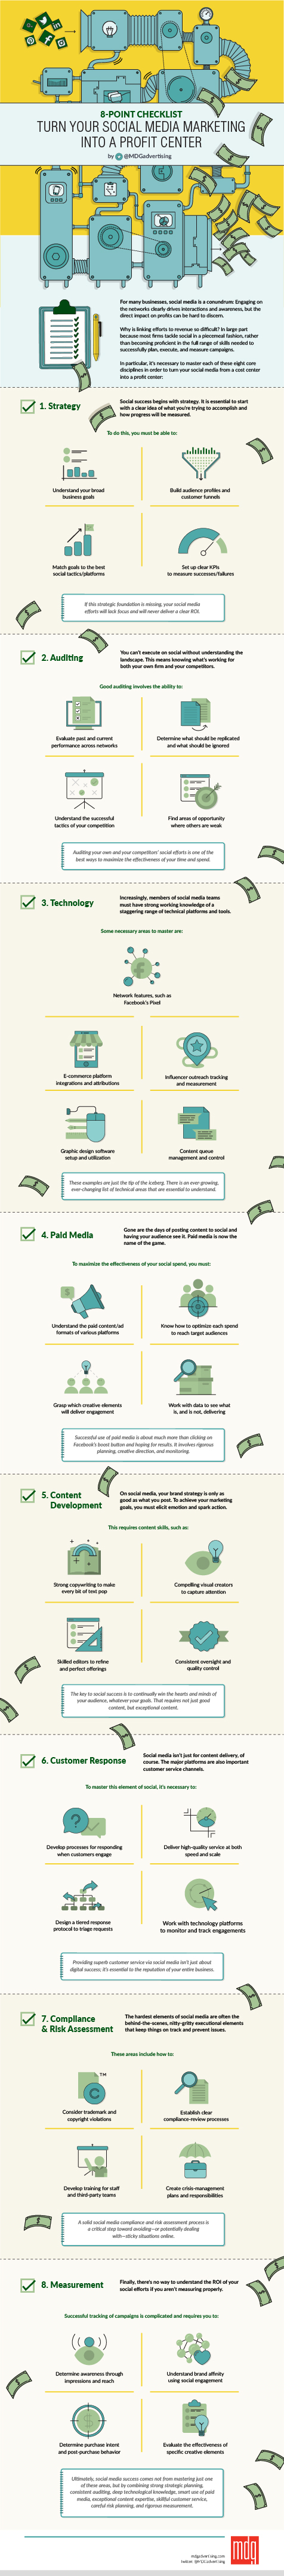 8-Point Checklist: Turn Your Social Media Marketing Into a Profit Center #infographic